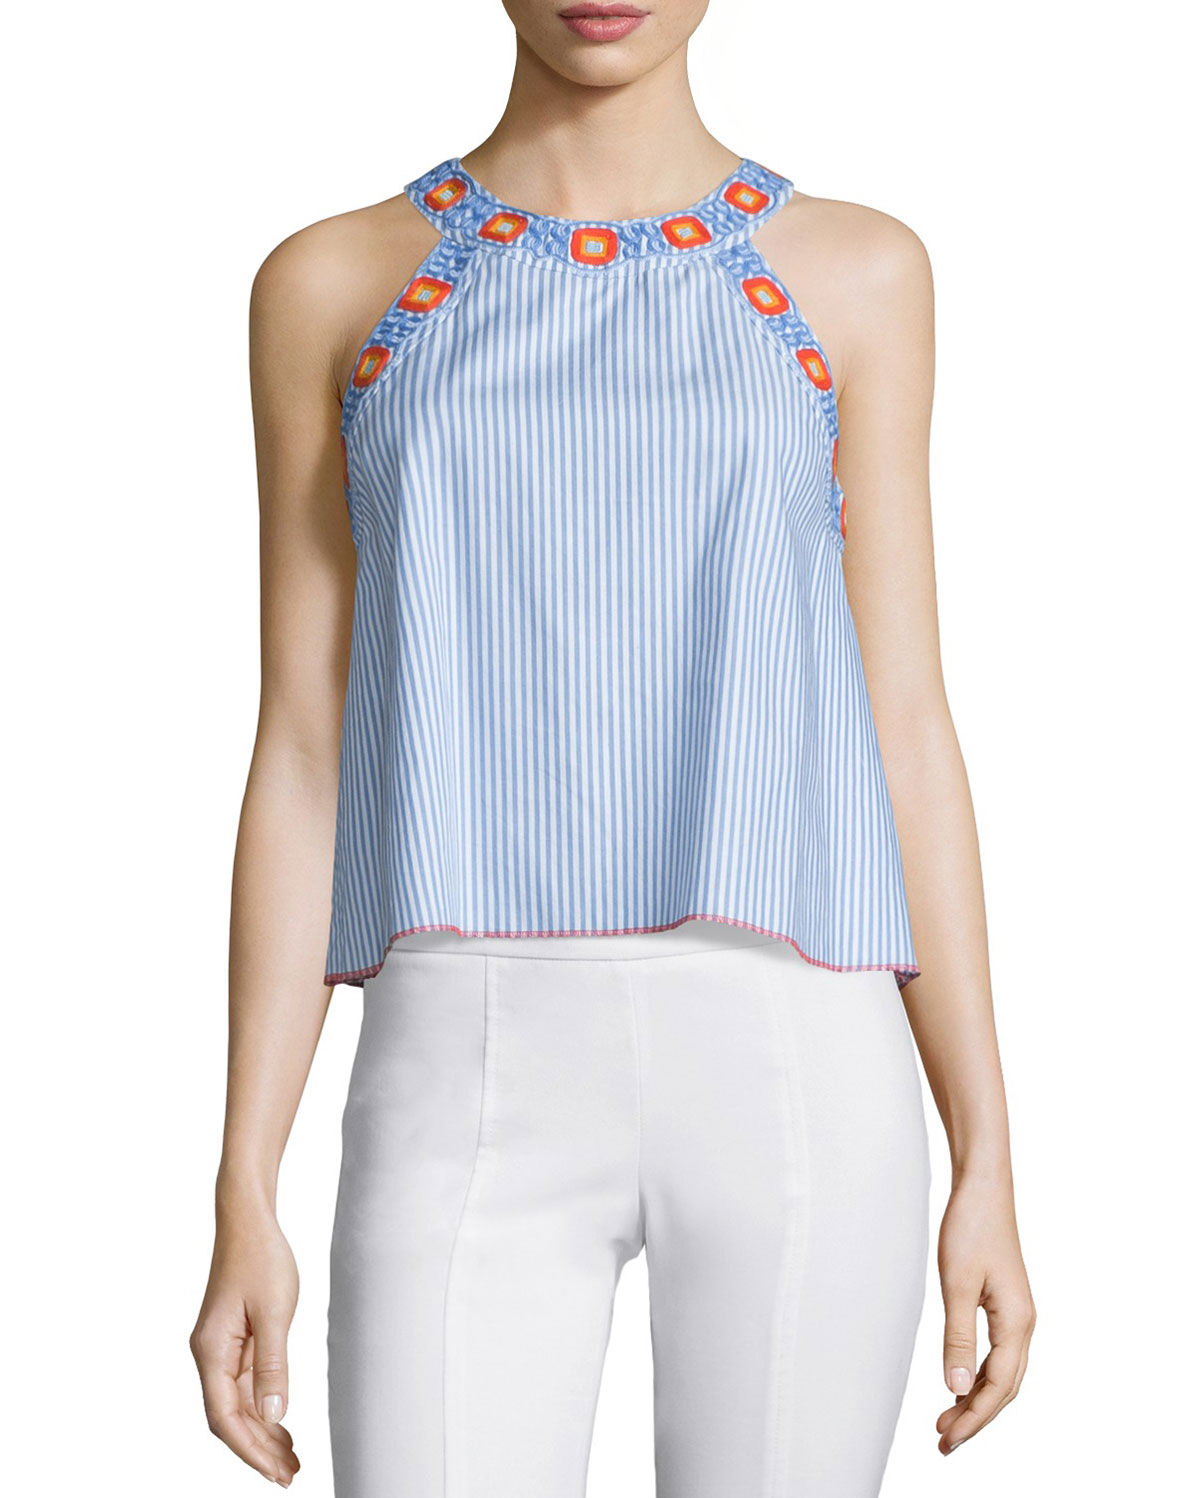 Meg Embroidered-Trim Crop Top, Blue Dusk/White